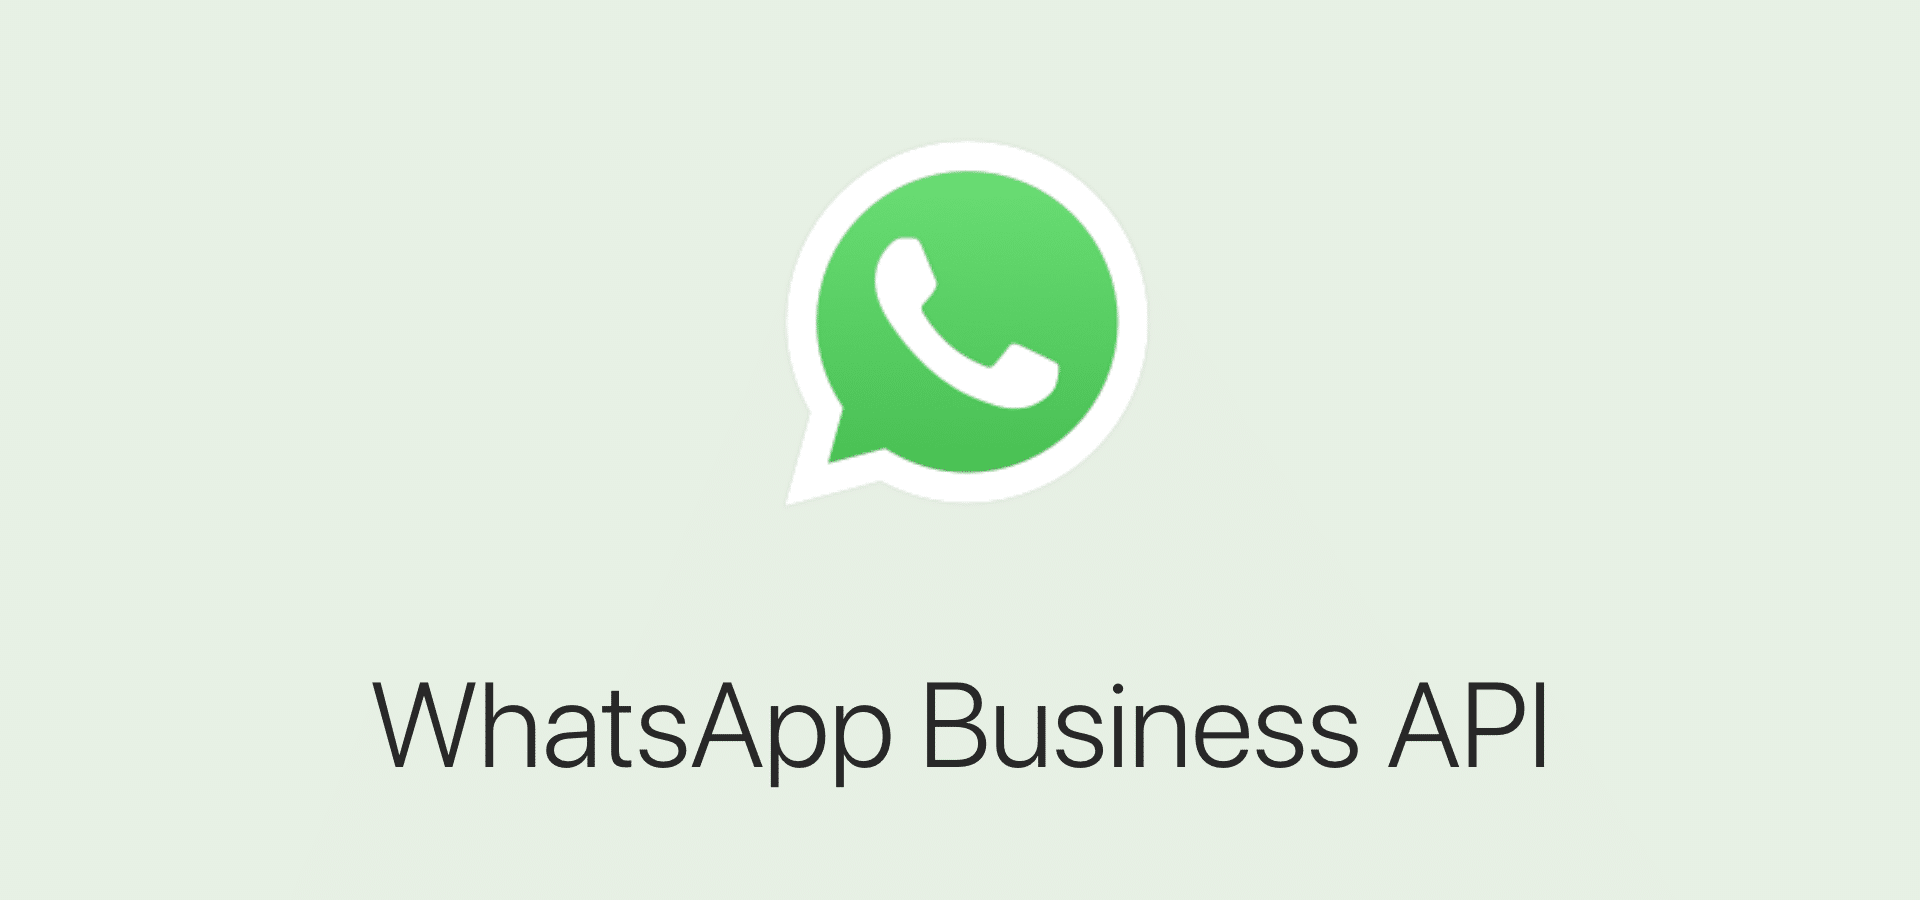 WhatsApp BusinessAPI